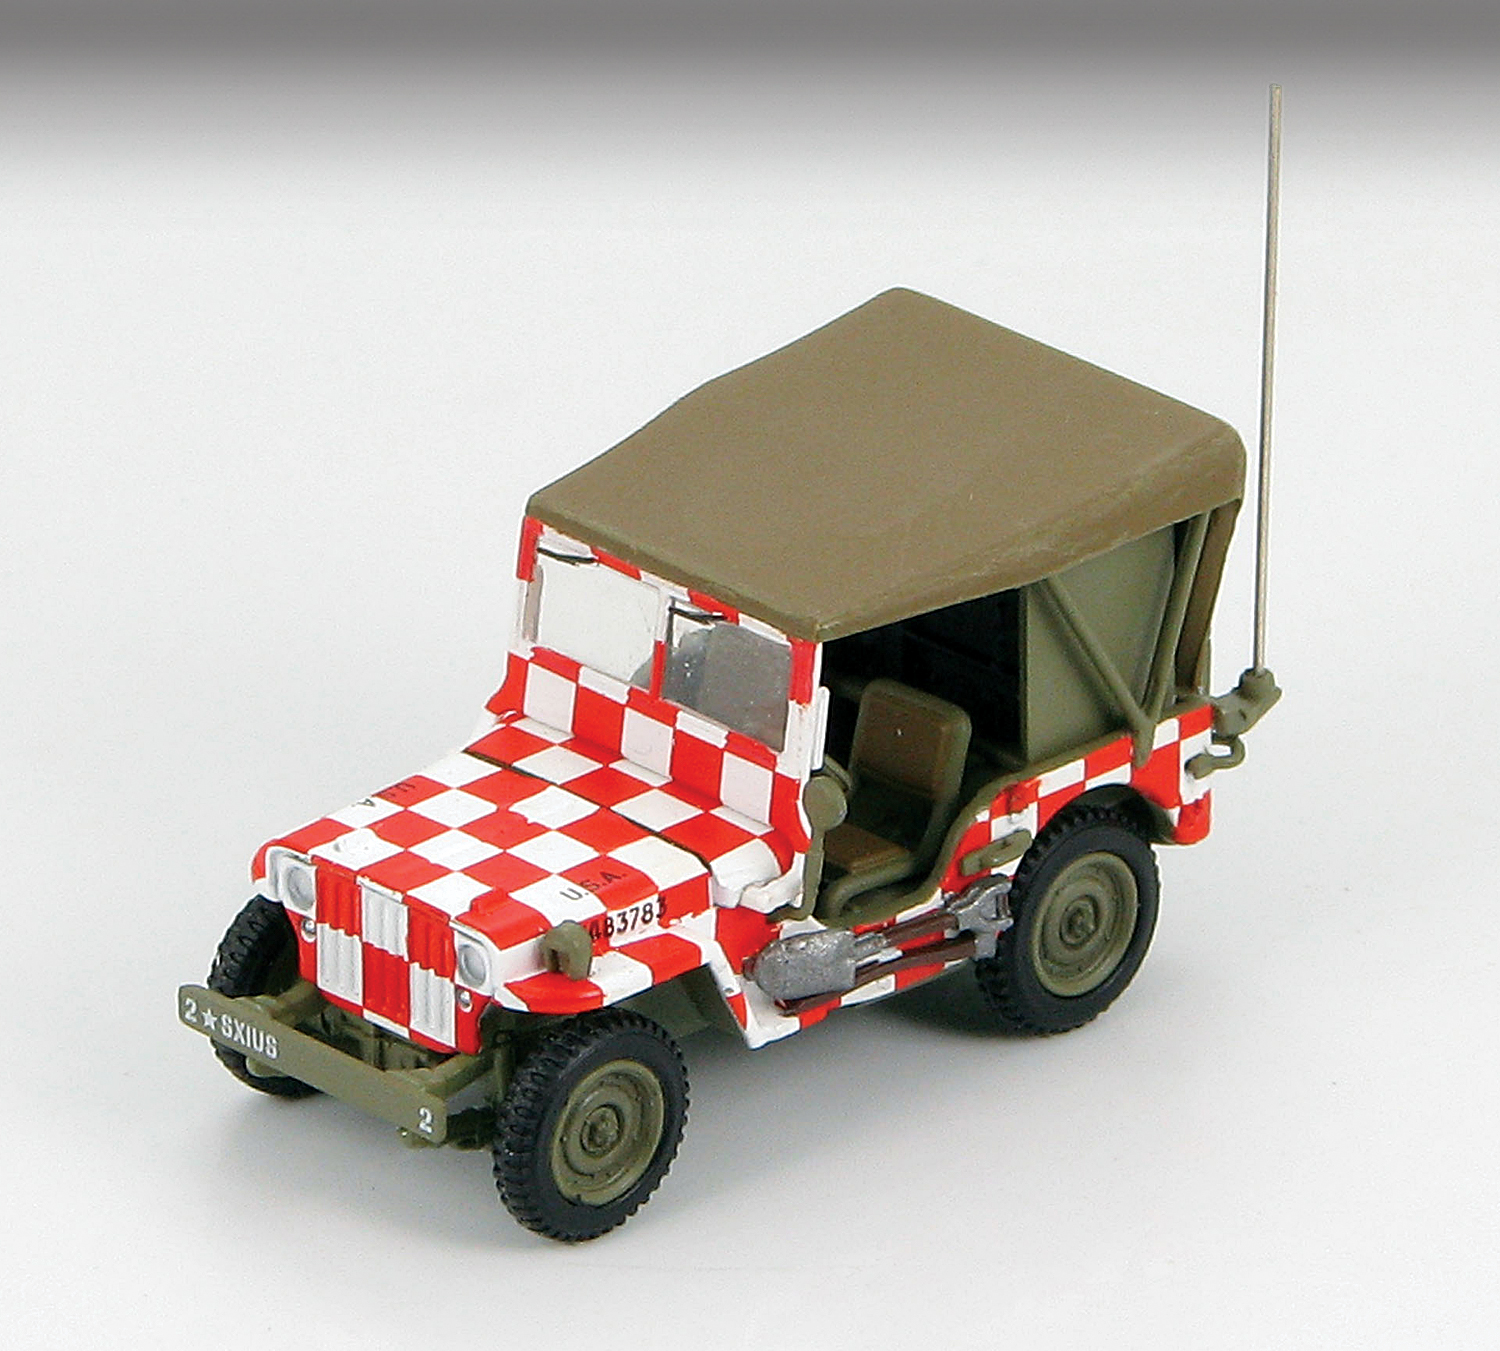 HG4209 Willys MB Jeep Airfield Jeep 172 Scale